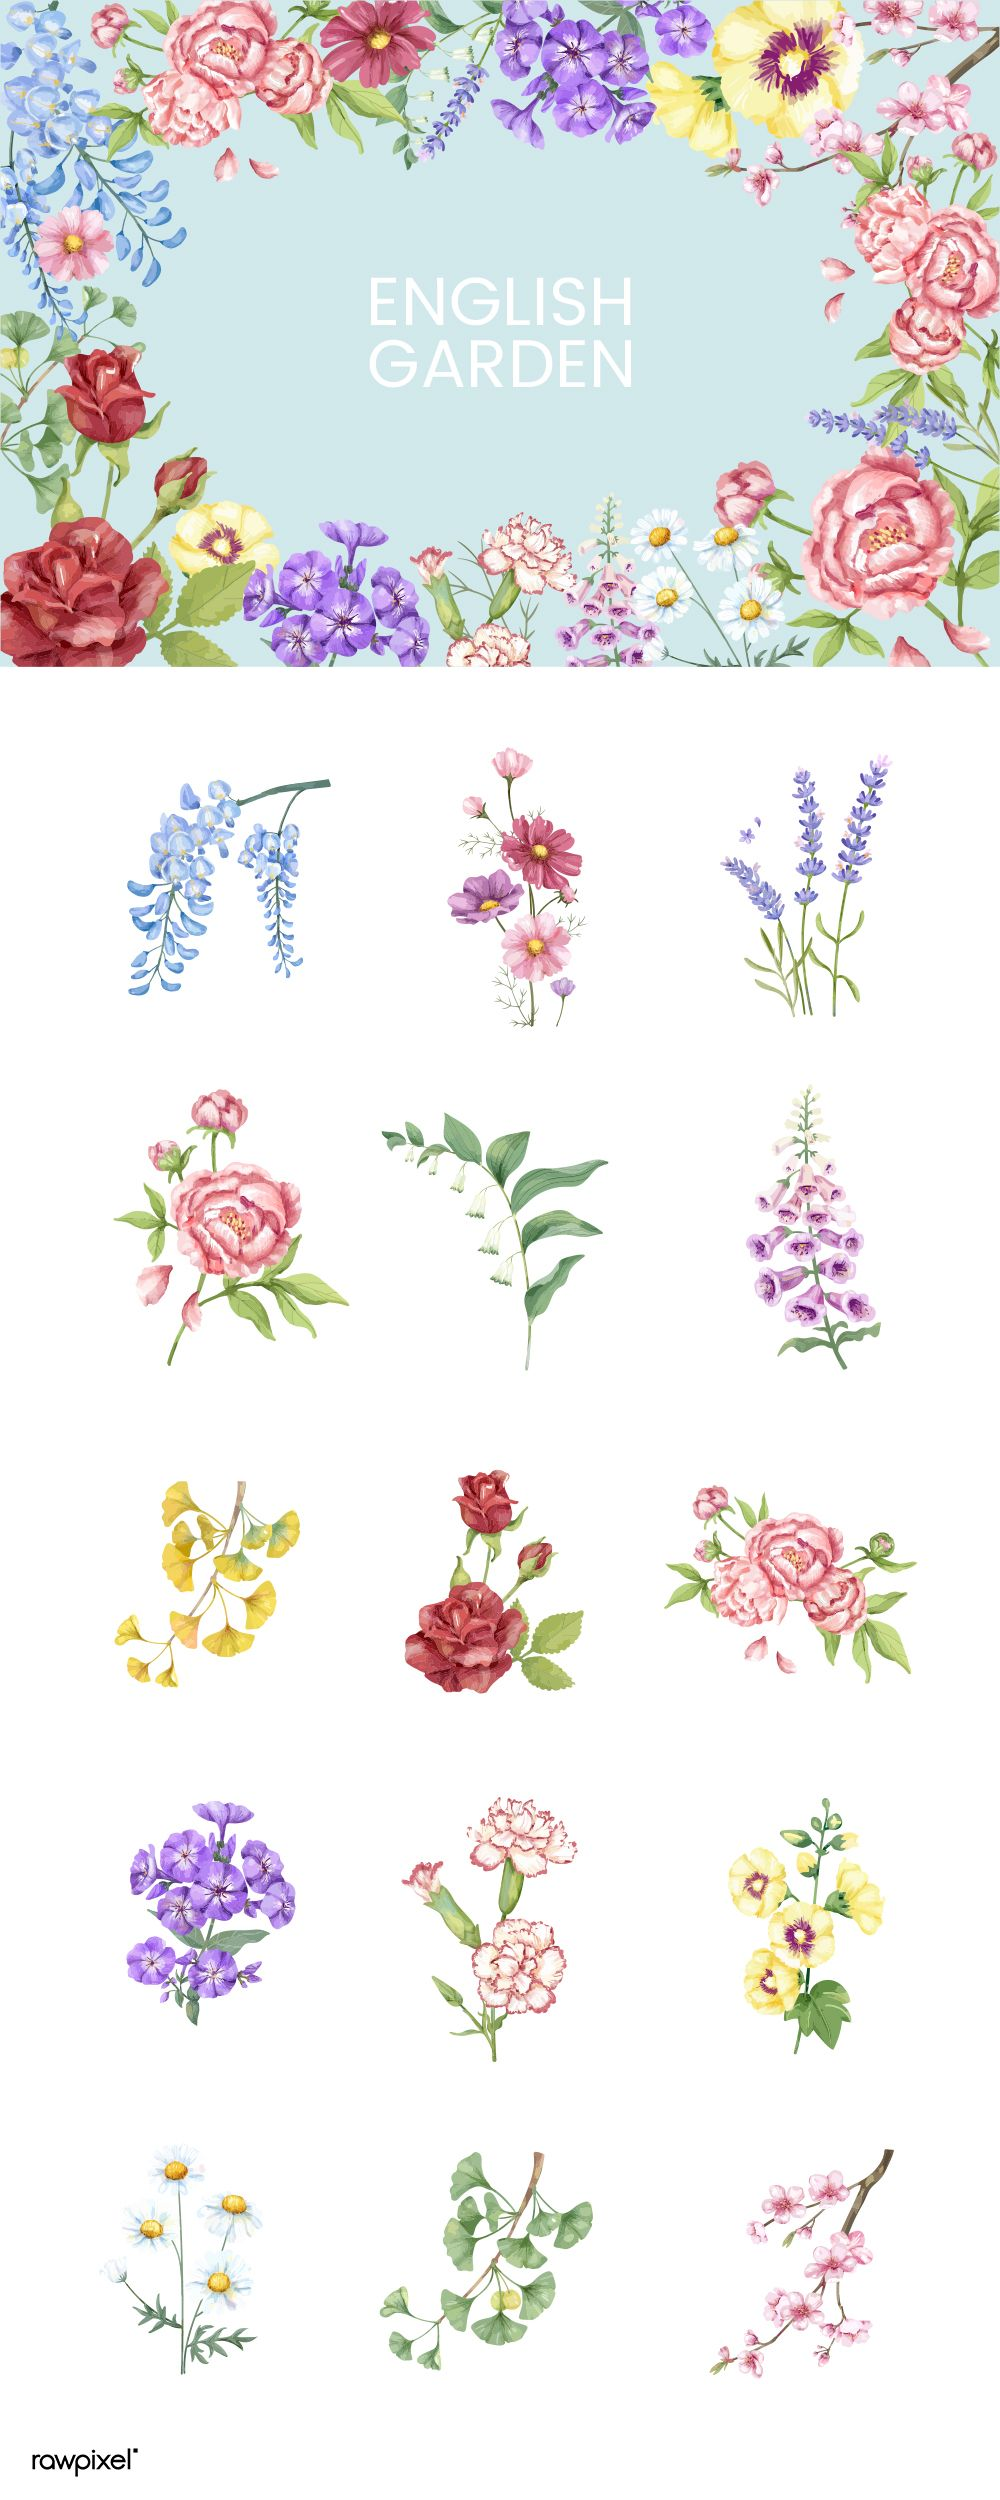 Download Free Royalty Free Vectors Of Beautiful Watercolor Spring And Summer Flower Vectors At Rawp Watercolor Flower Vector Flower Illustration Flower Doodles